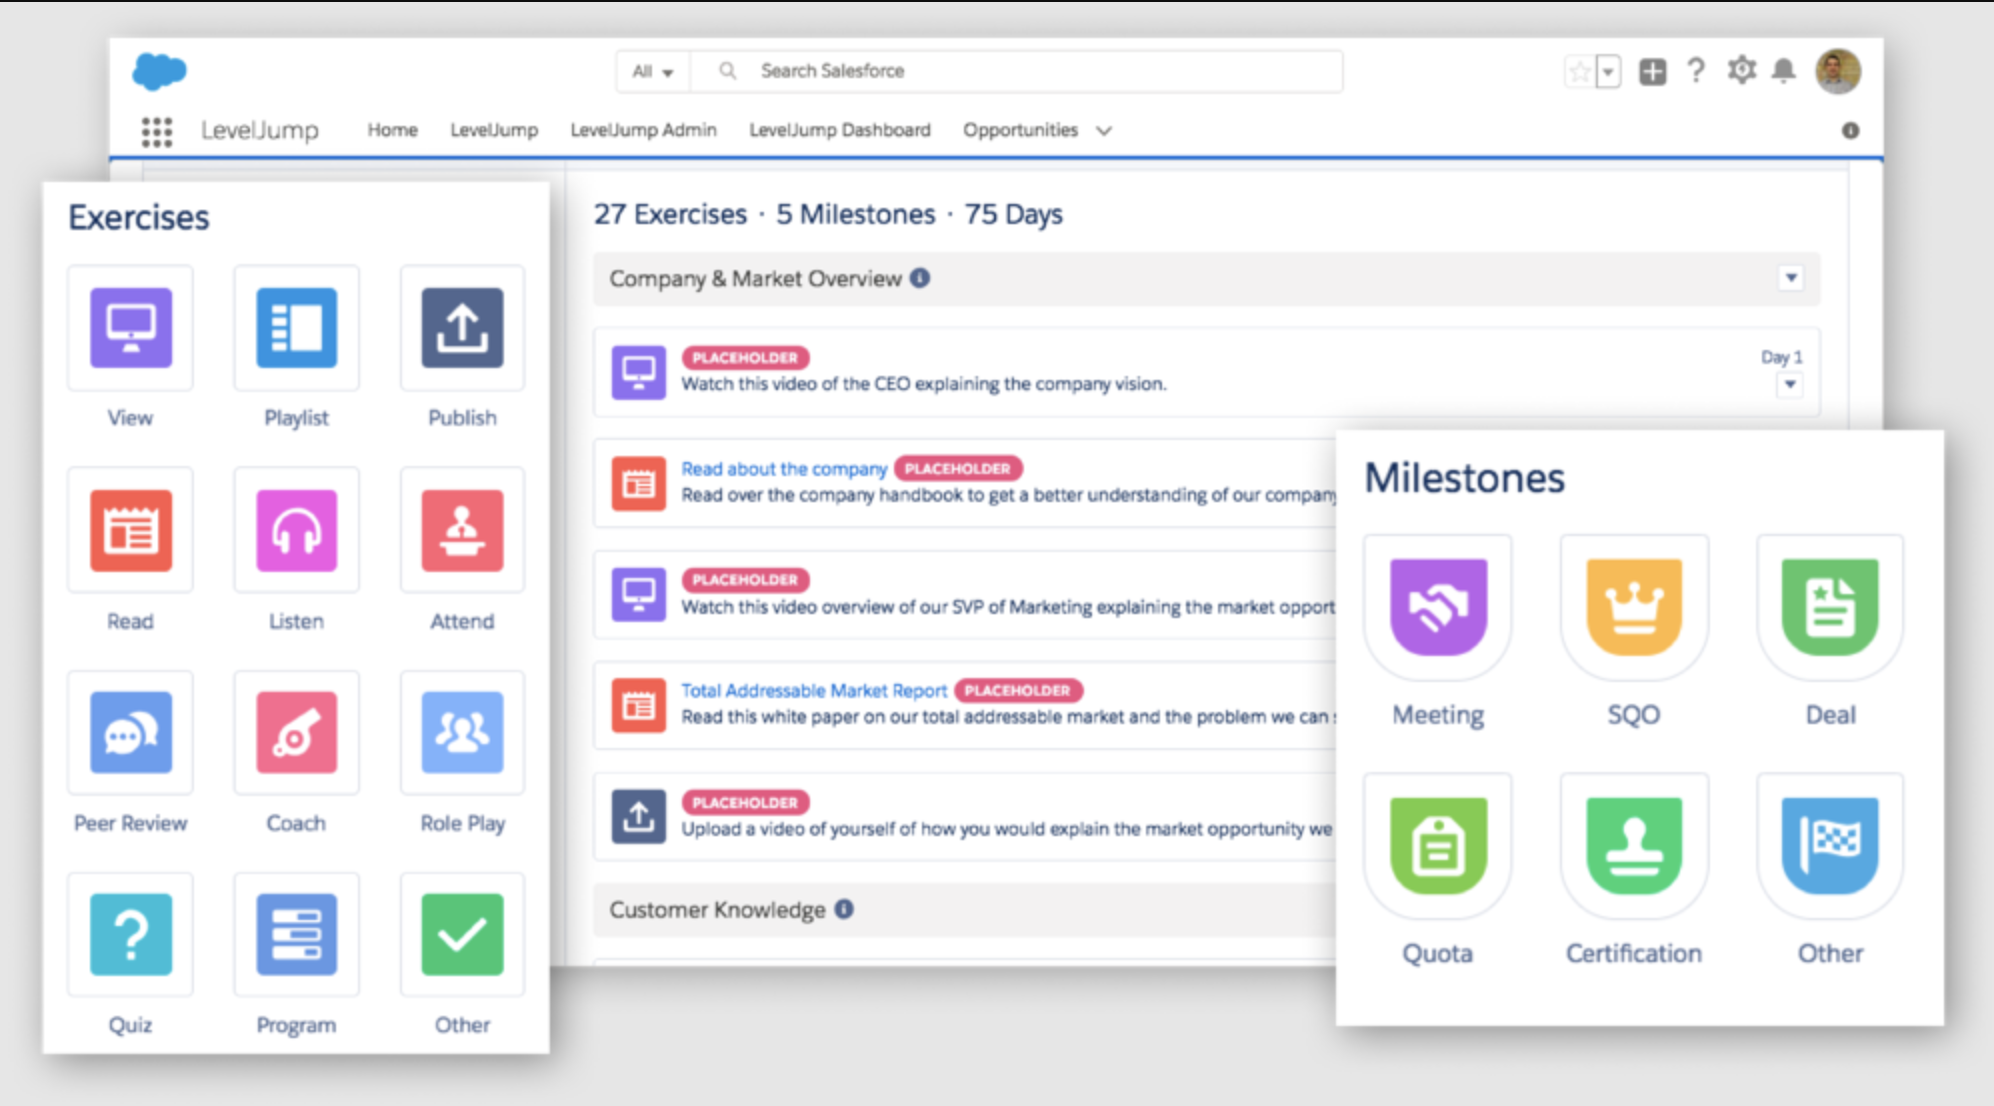 LevelJump Sales Enablement - build programs, exercises and milestones for sales reps to complete